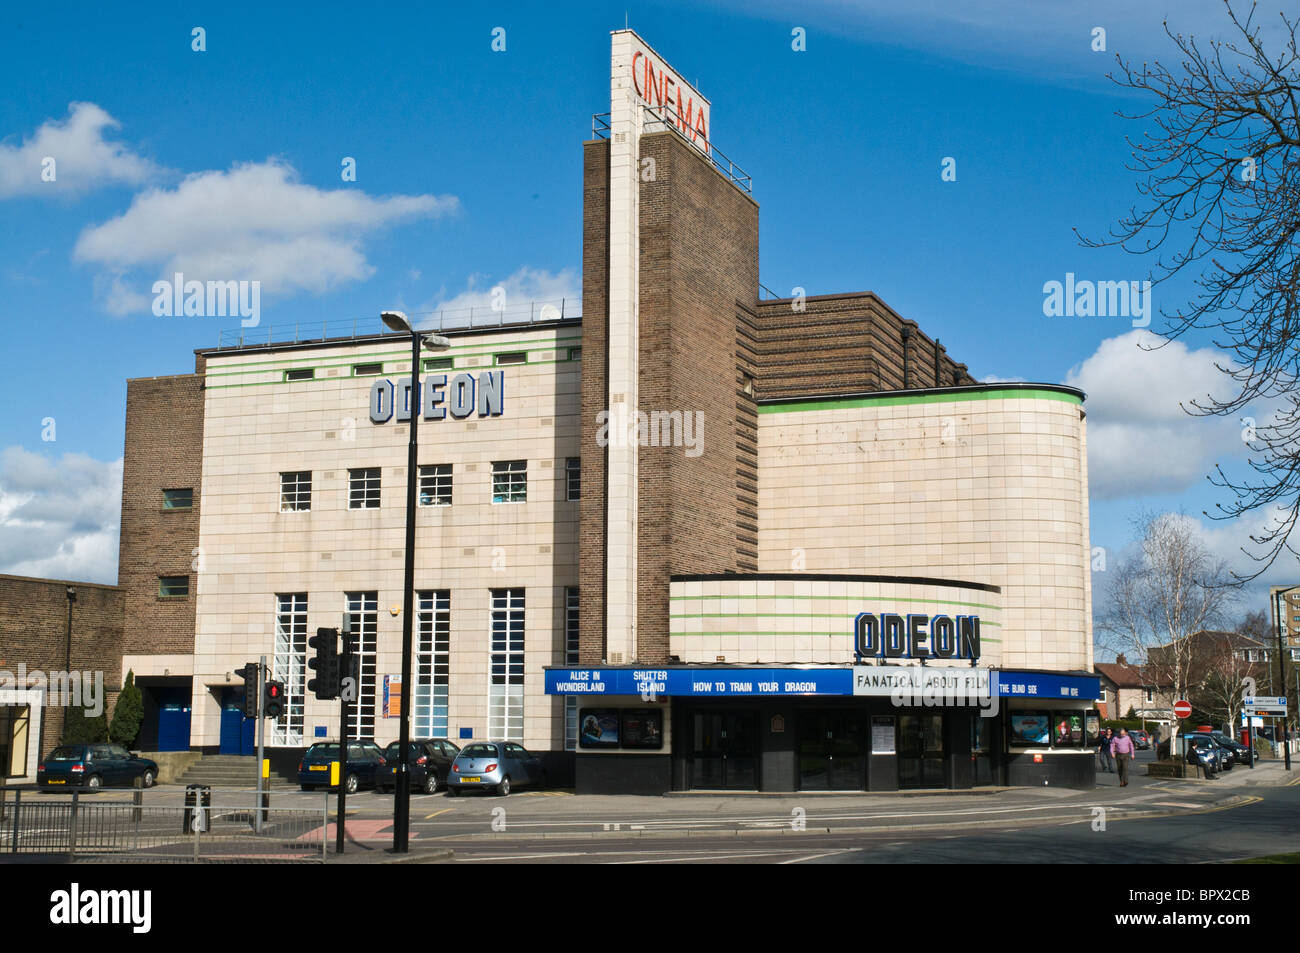 Dh HARROGATE North Yorkshire Cine Odeon artdeco cine art deco Inglaterra Imagen De Stock